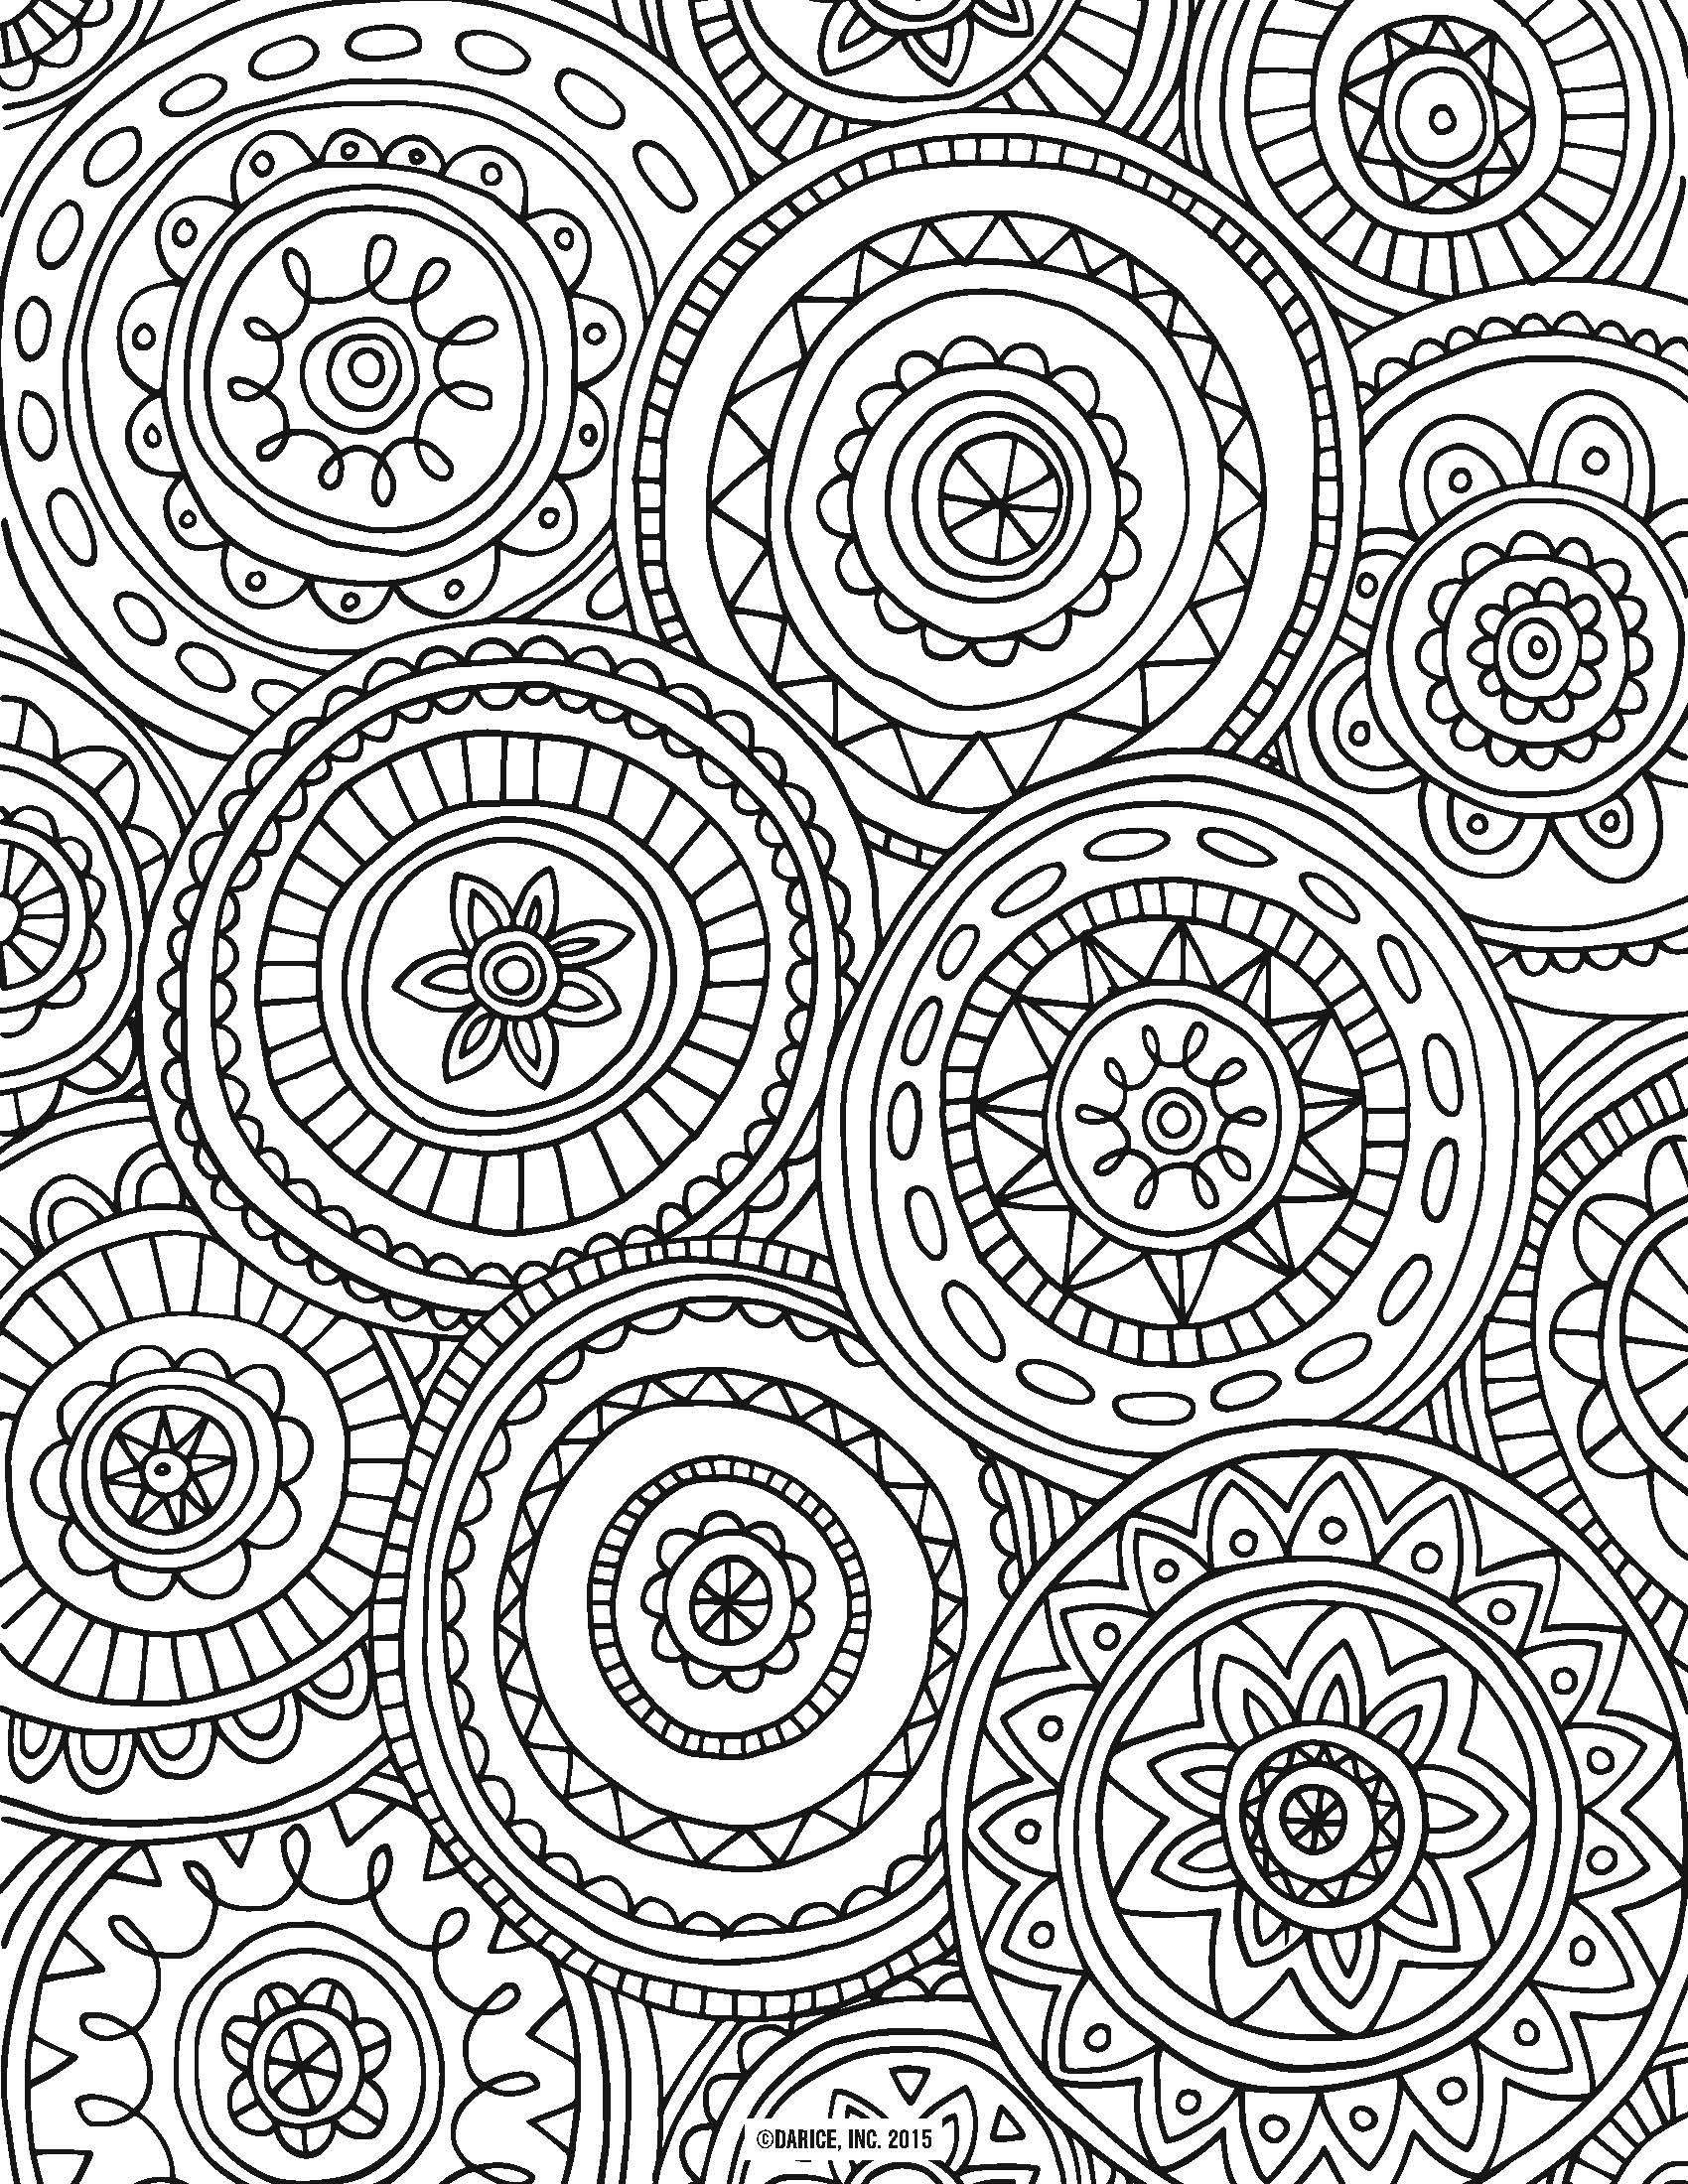 Adult Coloring Page. Wolf. Zentangle Doodle Coloring Book Page ...   2200x1700